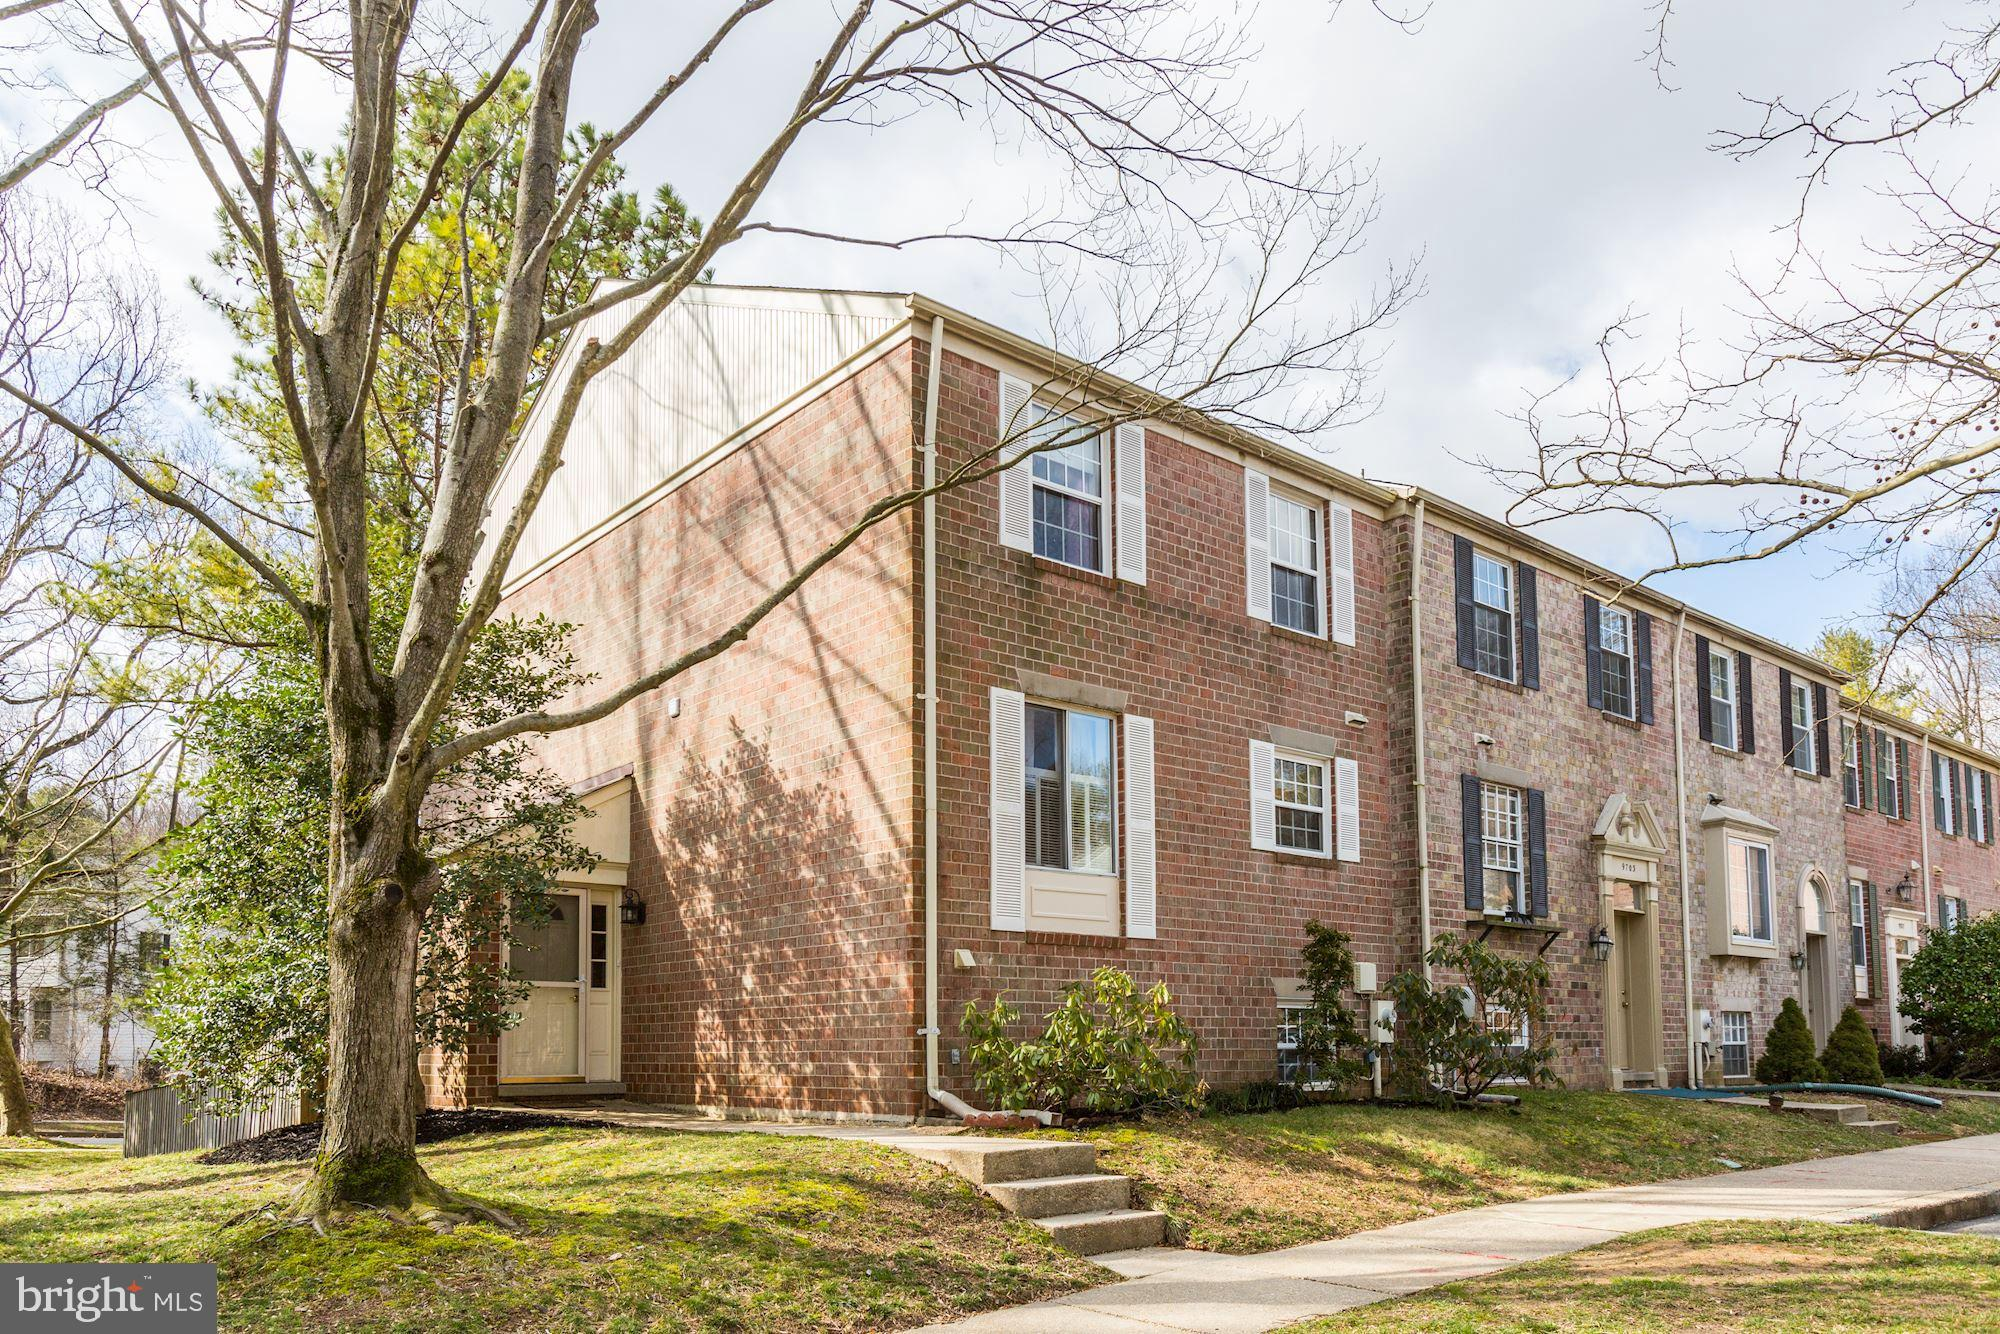 9701 EARLY SPRING WAY, COLUMBIA, MD 21046